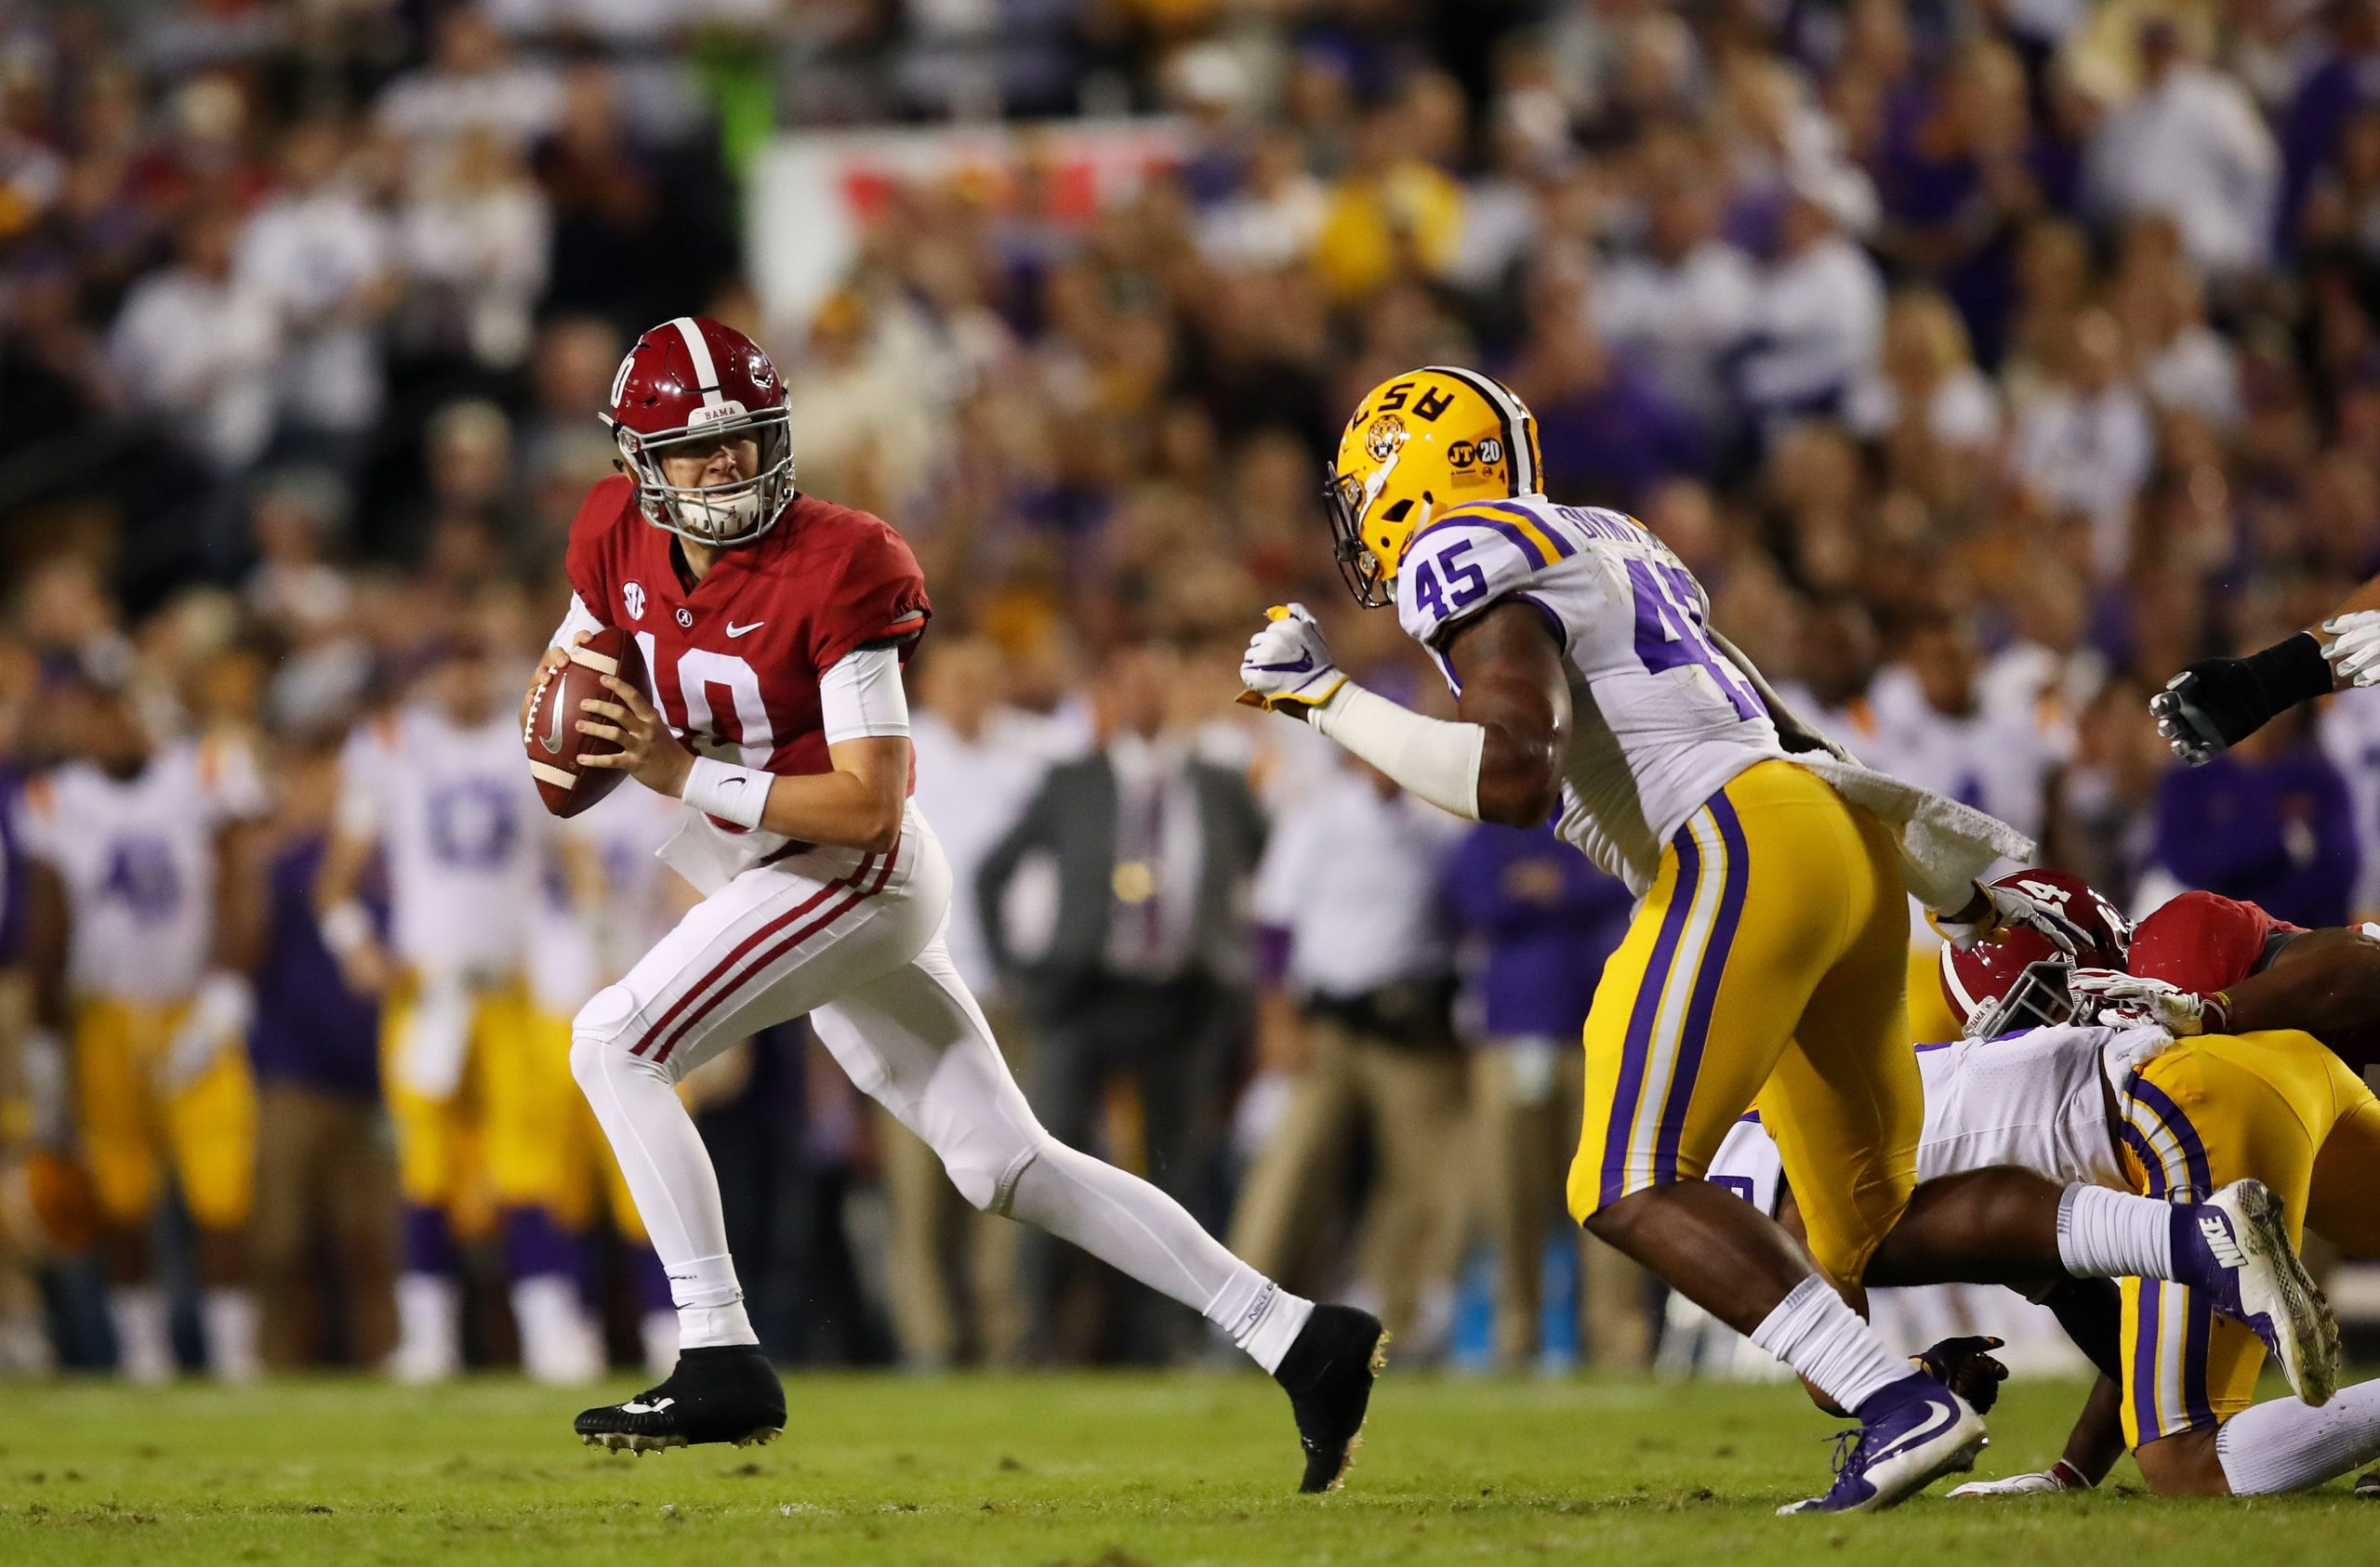 Alabama vs LSU free pick